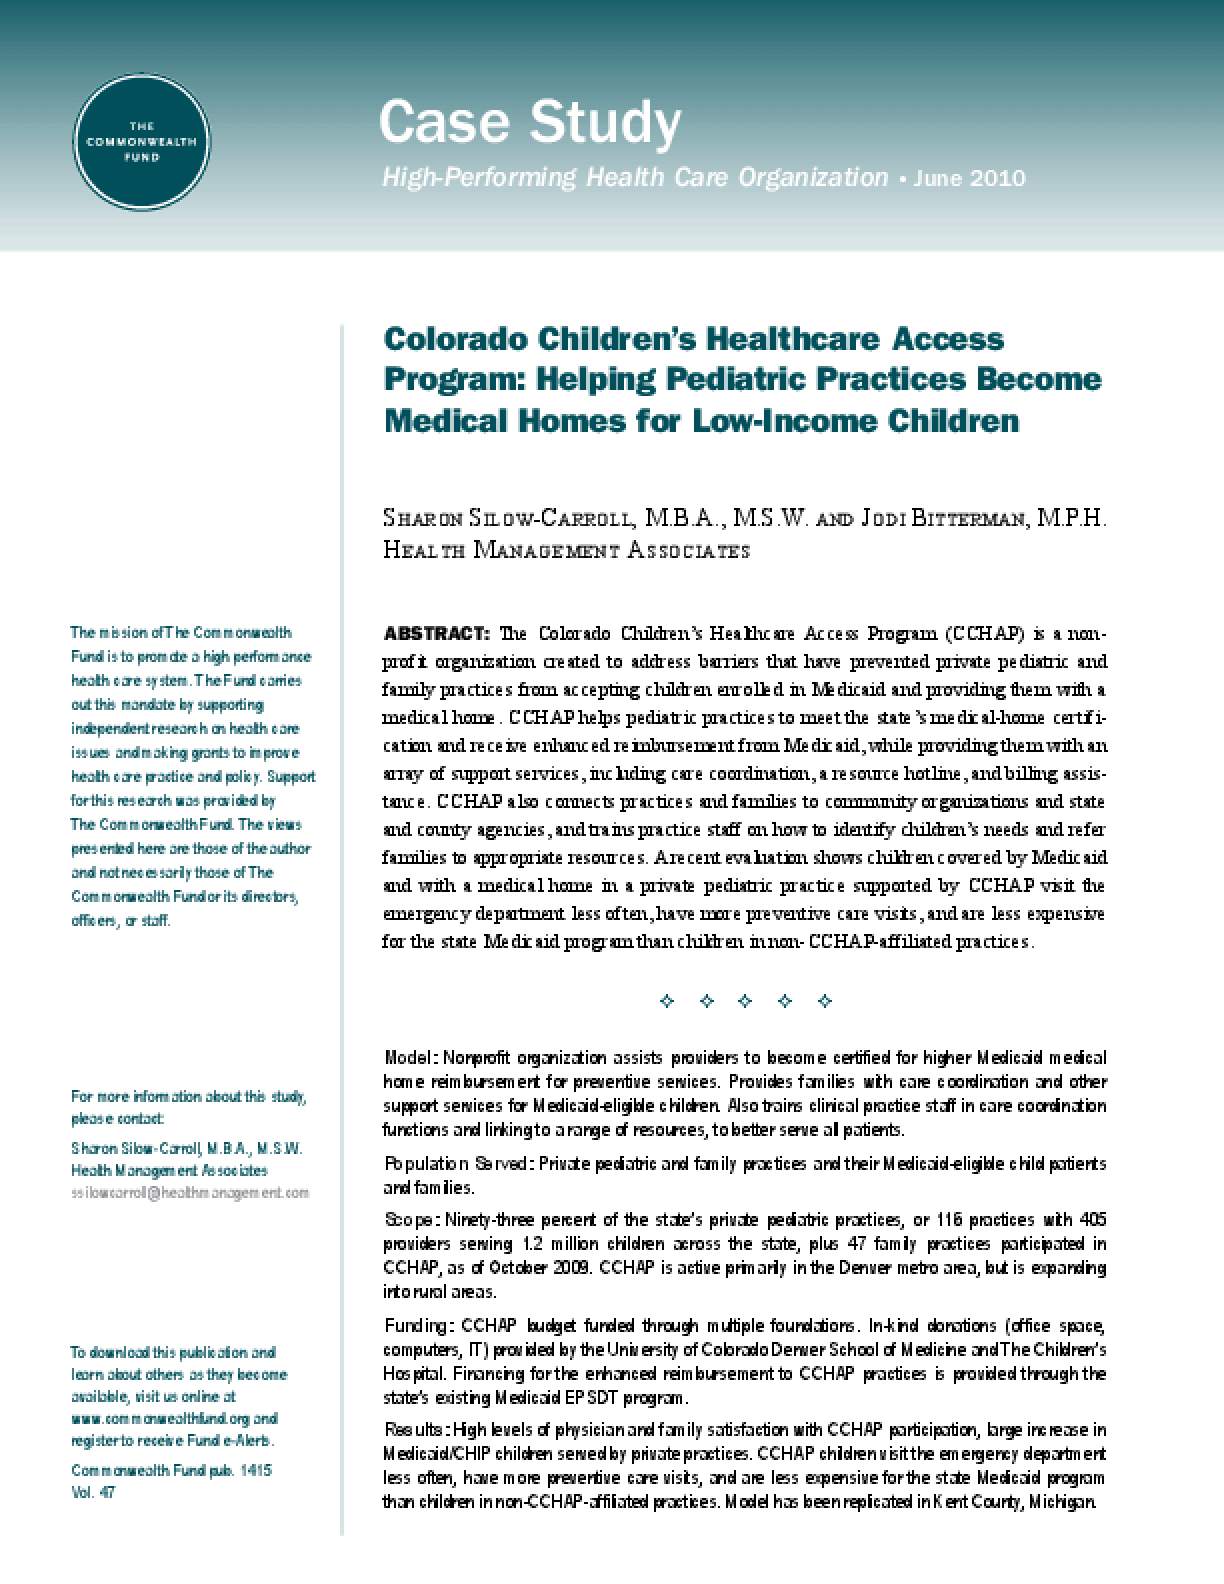 Colorado Children's Healthcare Access Program: Helping Pediatric Practices Become Medical Homes for Low-Income Children